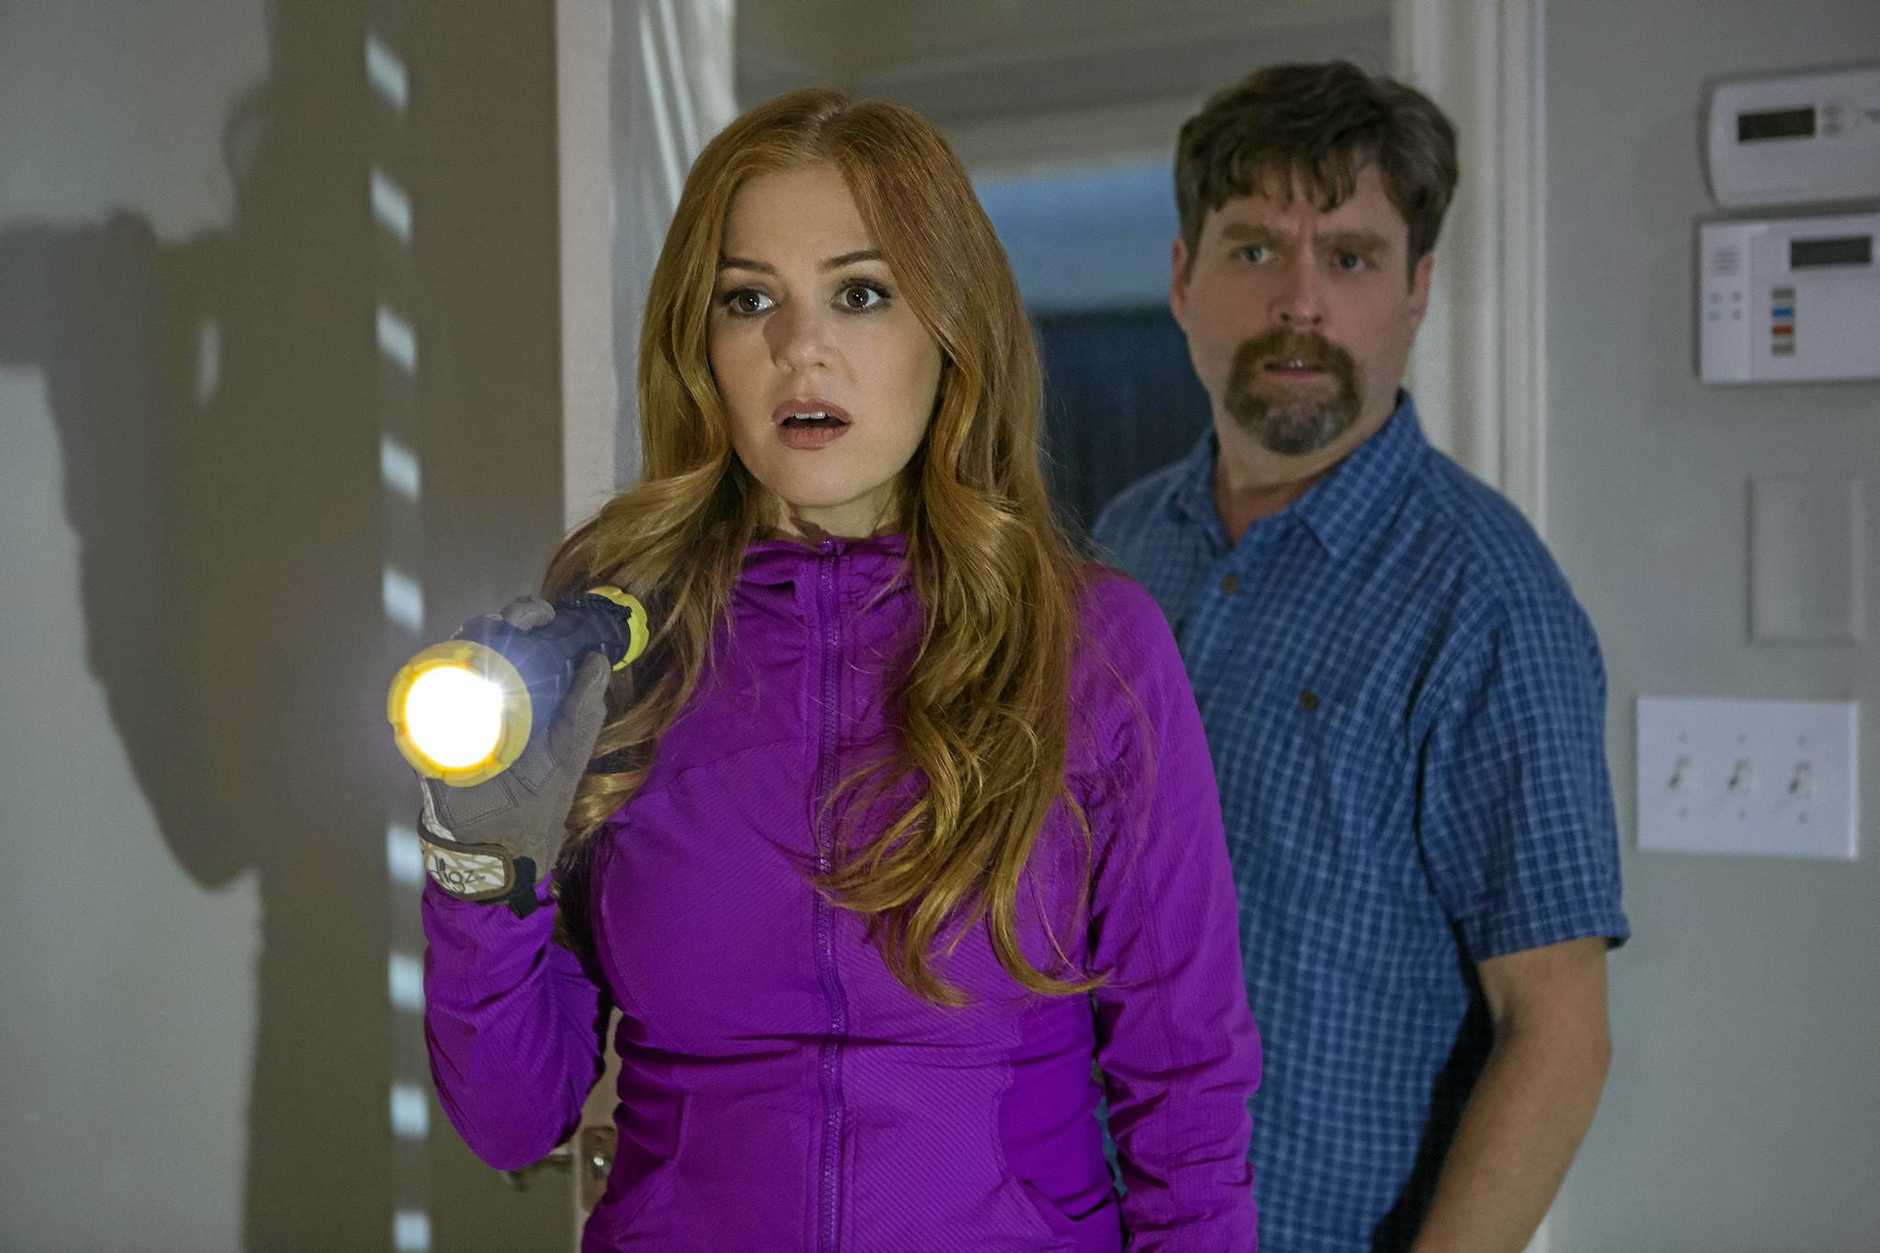 LOOKING FOR THE JOKES: Isla Fisher and Zach Galifianakis in a scene from the movie Keeping Up With The Joneses.